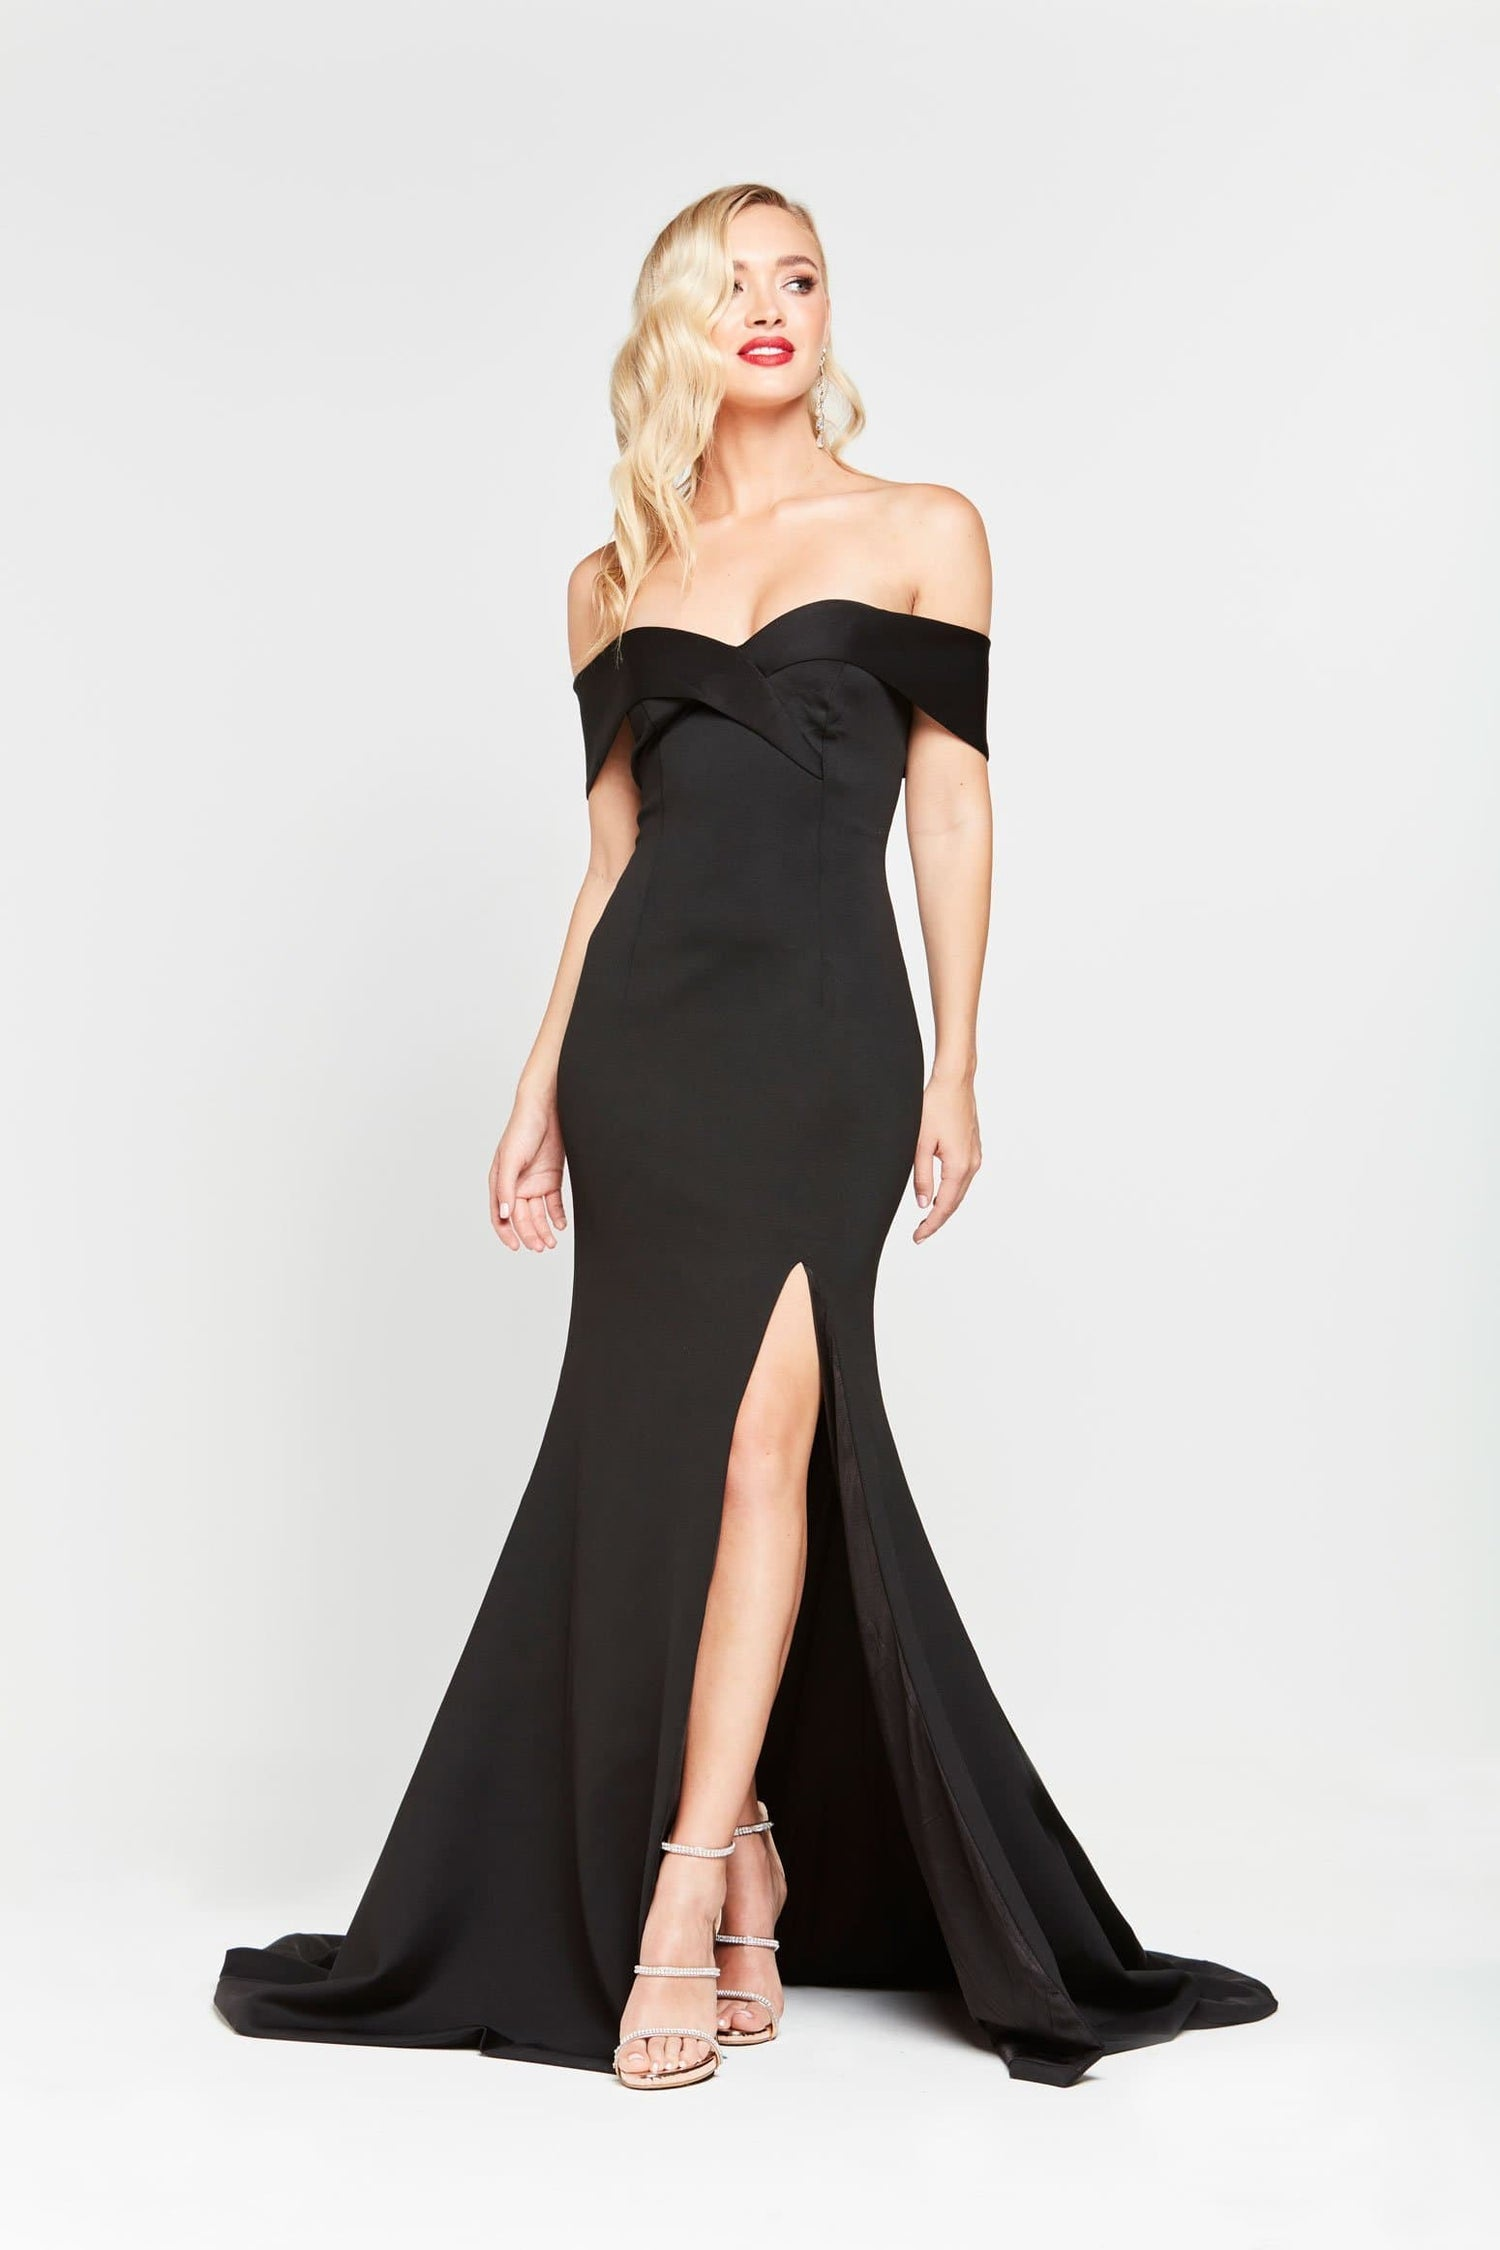 A&N Ester - Black Ponti Gown with Off Shoulder Straps and Front Slit